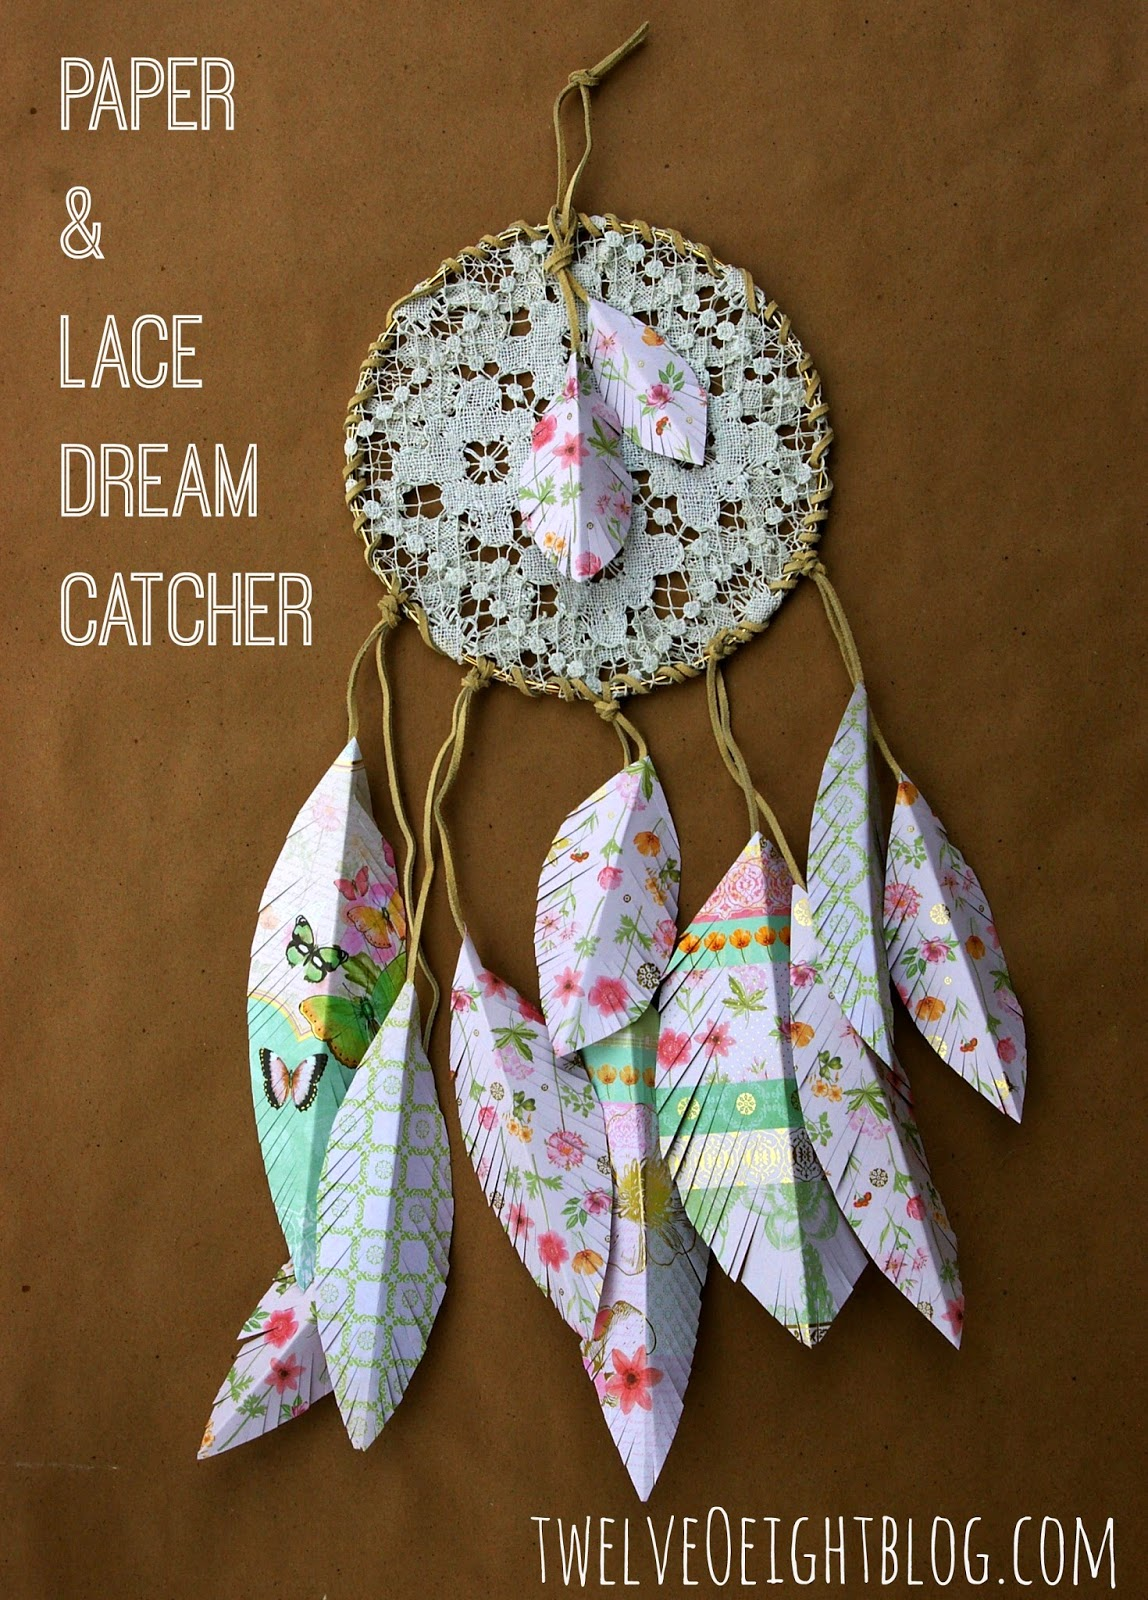 Dream Catcher Without Feathers Paper lace dream catcher for Abbie's room 6